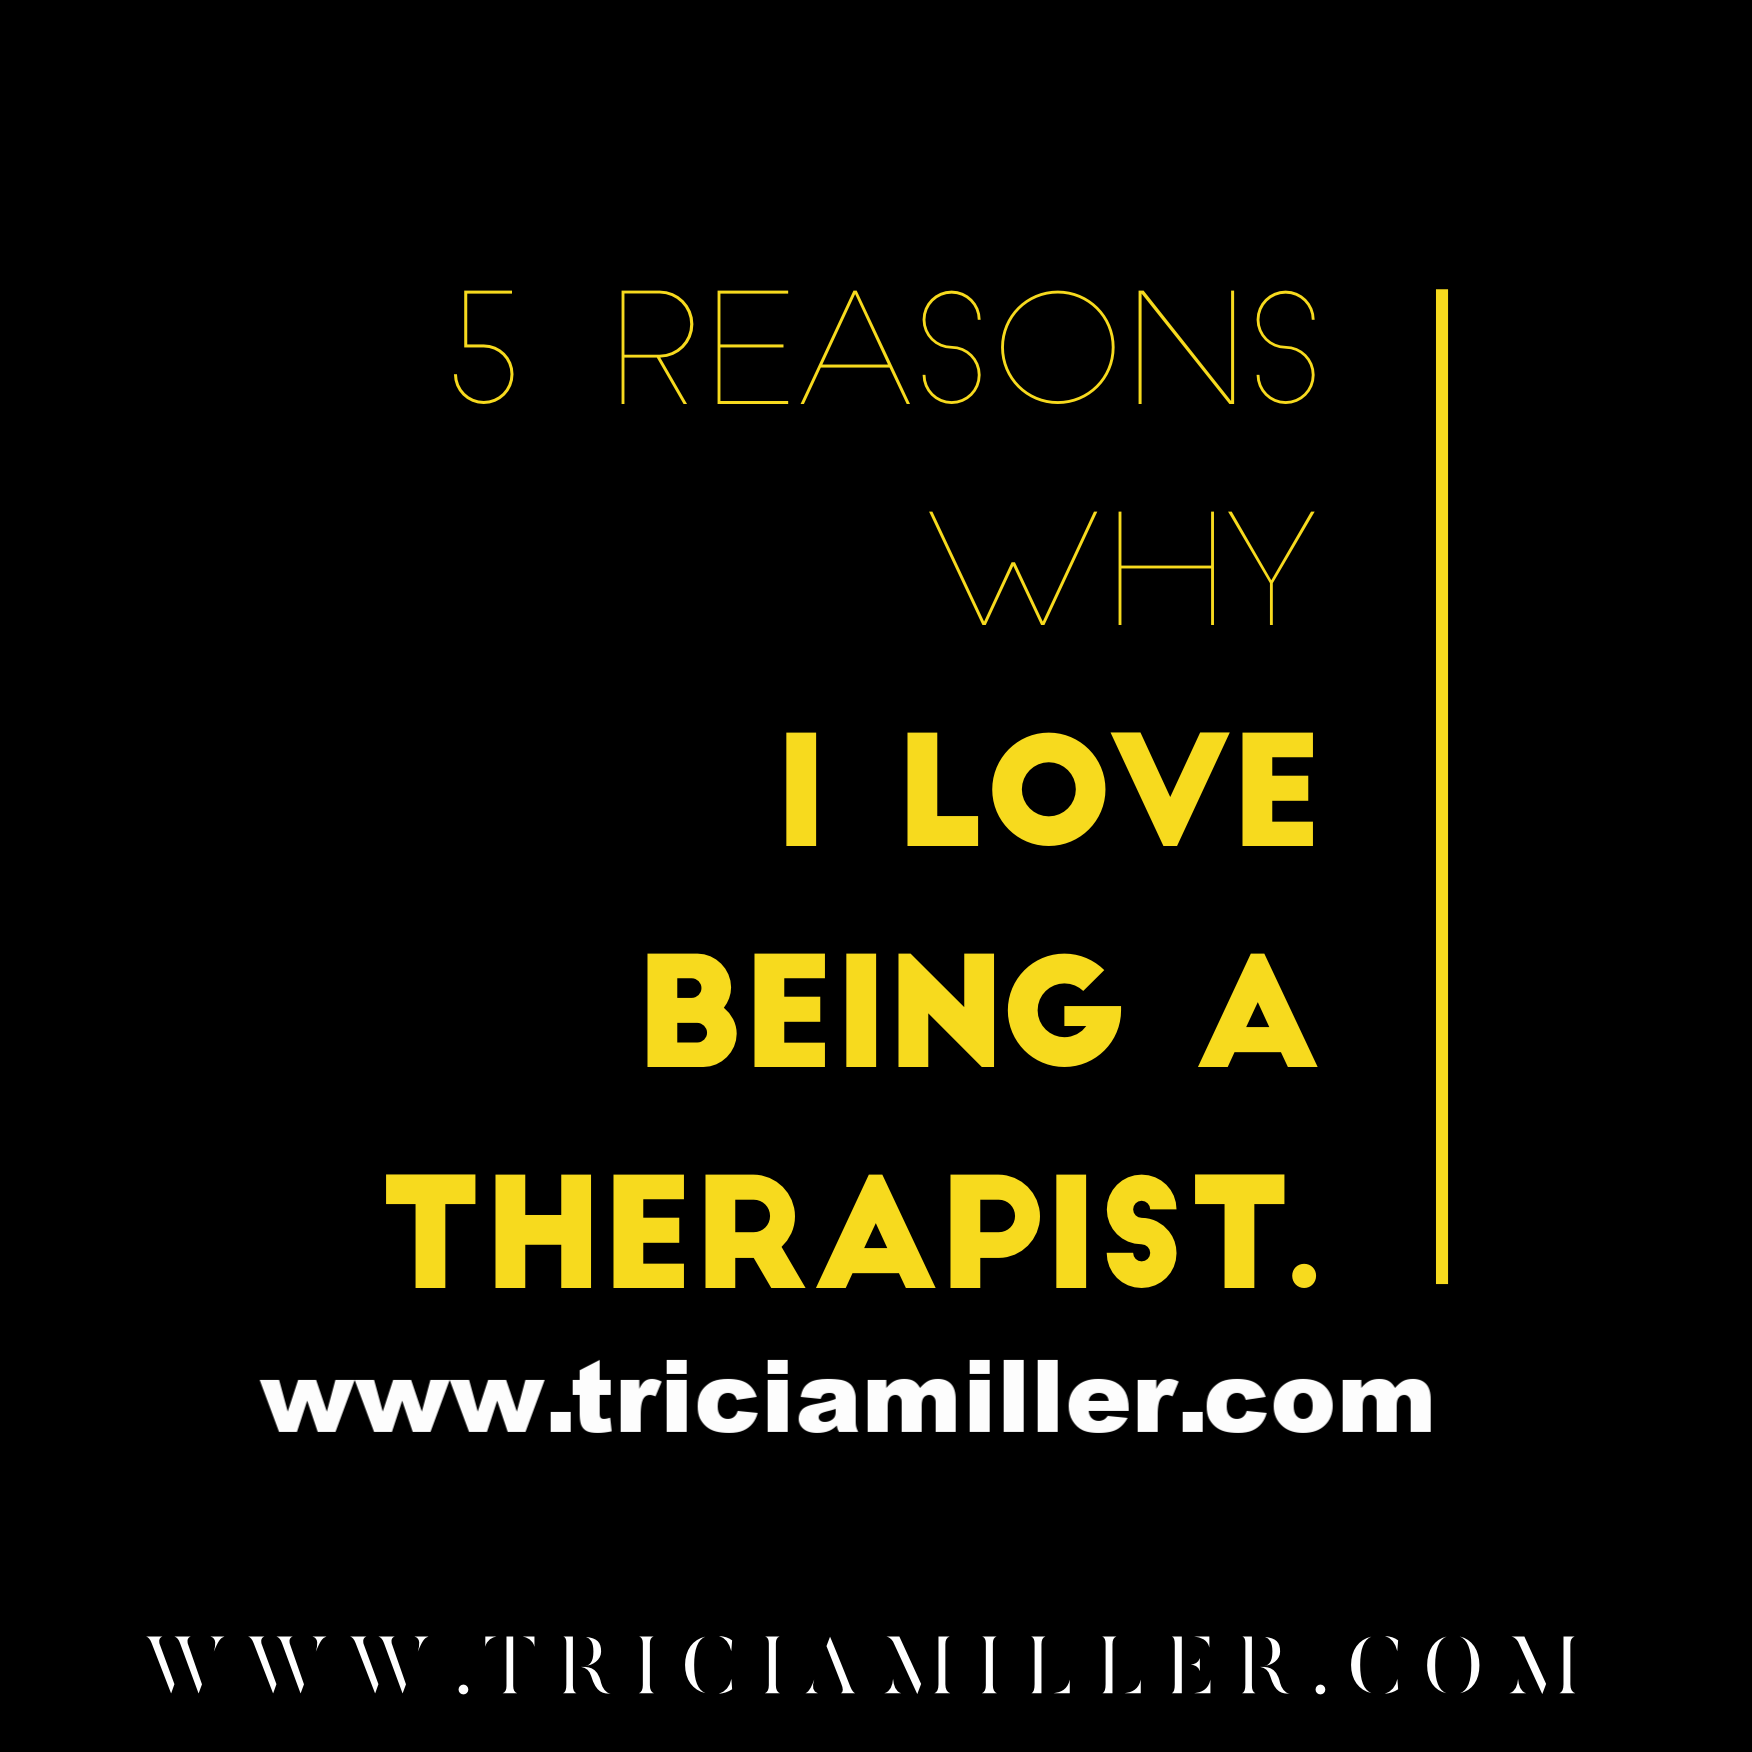 5 Reasons I Love Being a Therapist (Yellow).png